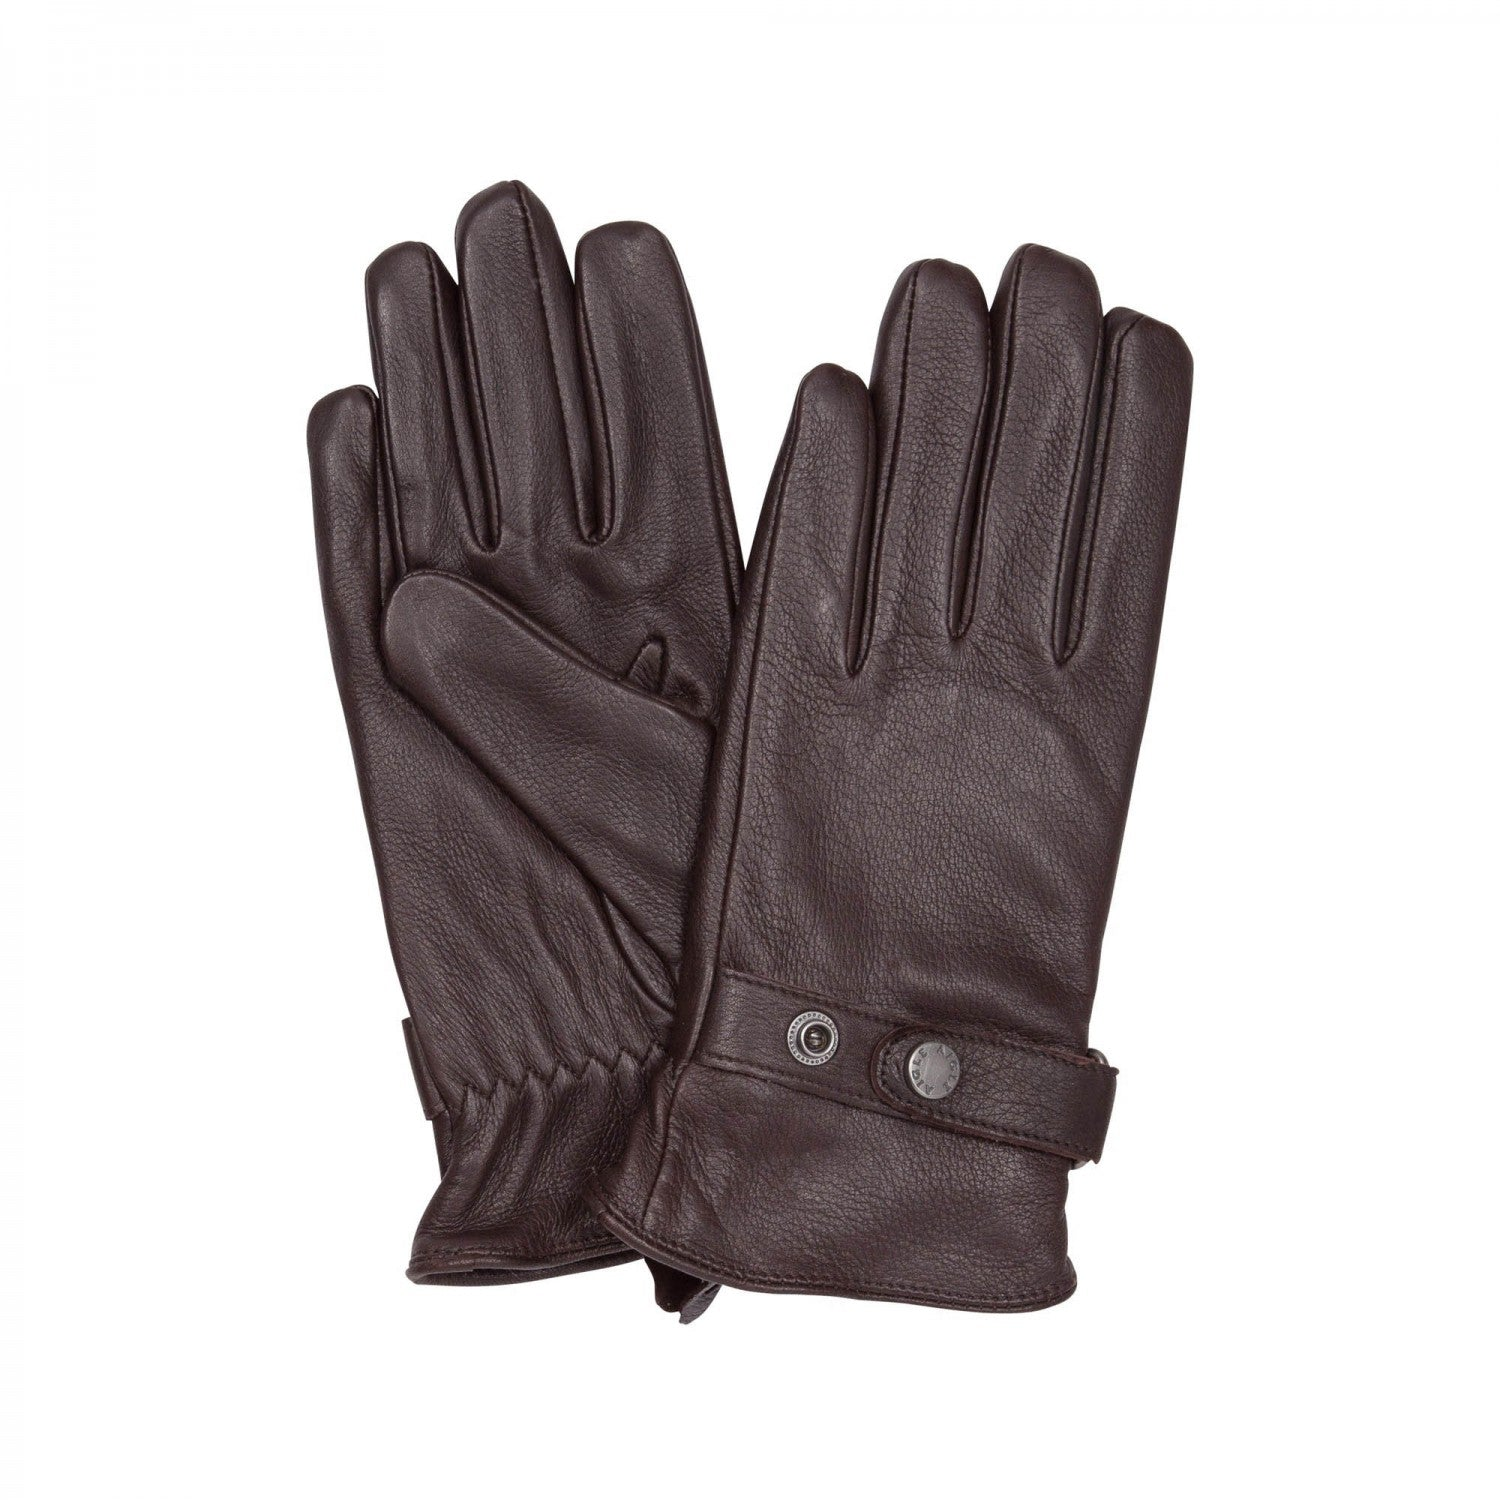 Aigle Gilmor Dark Brown Leather Gloves - LAST SIZES REDUCED!!